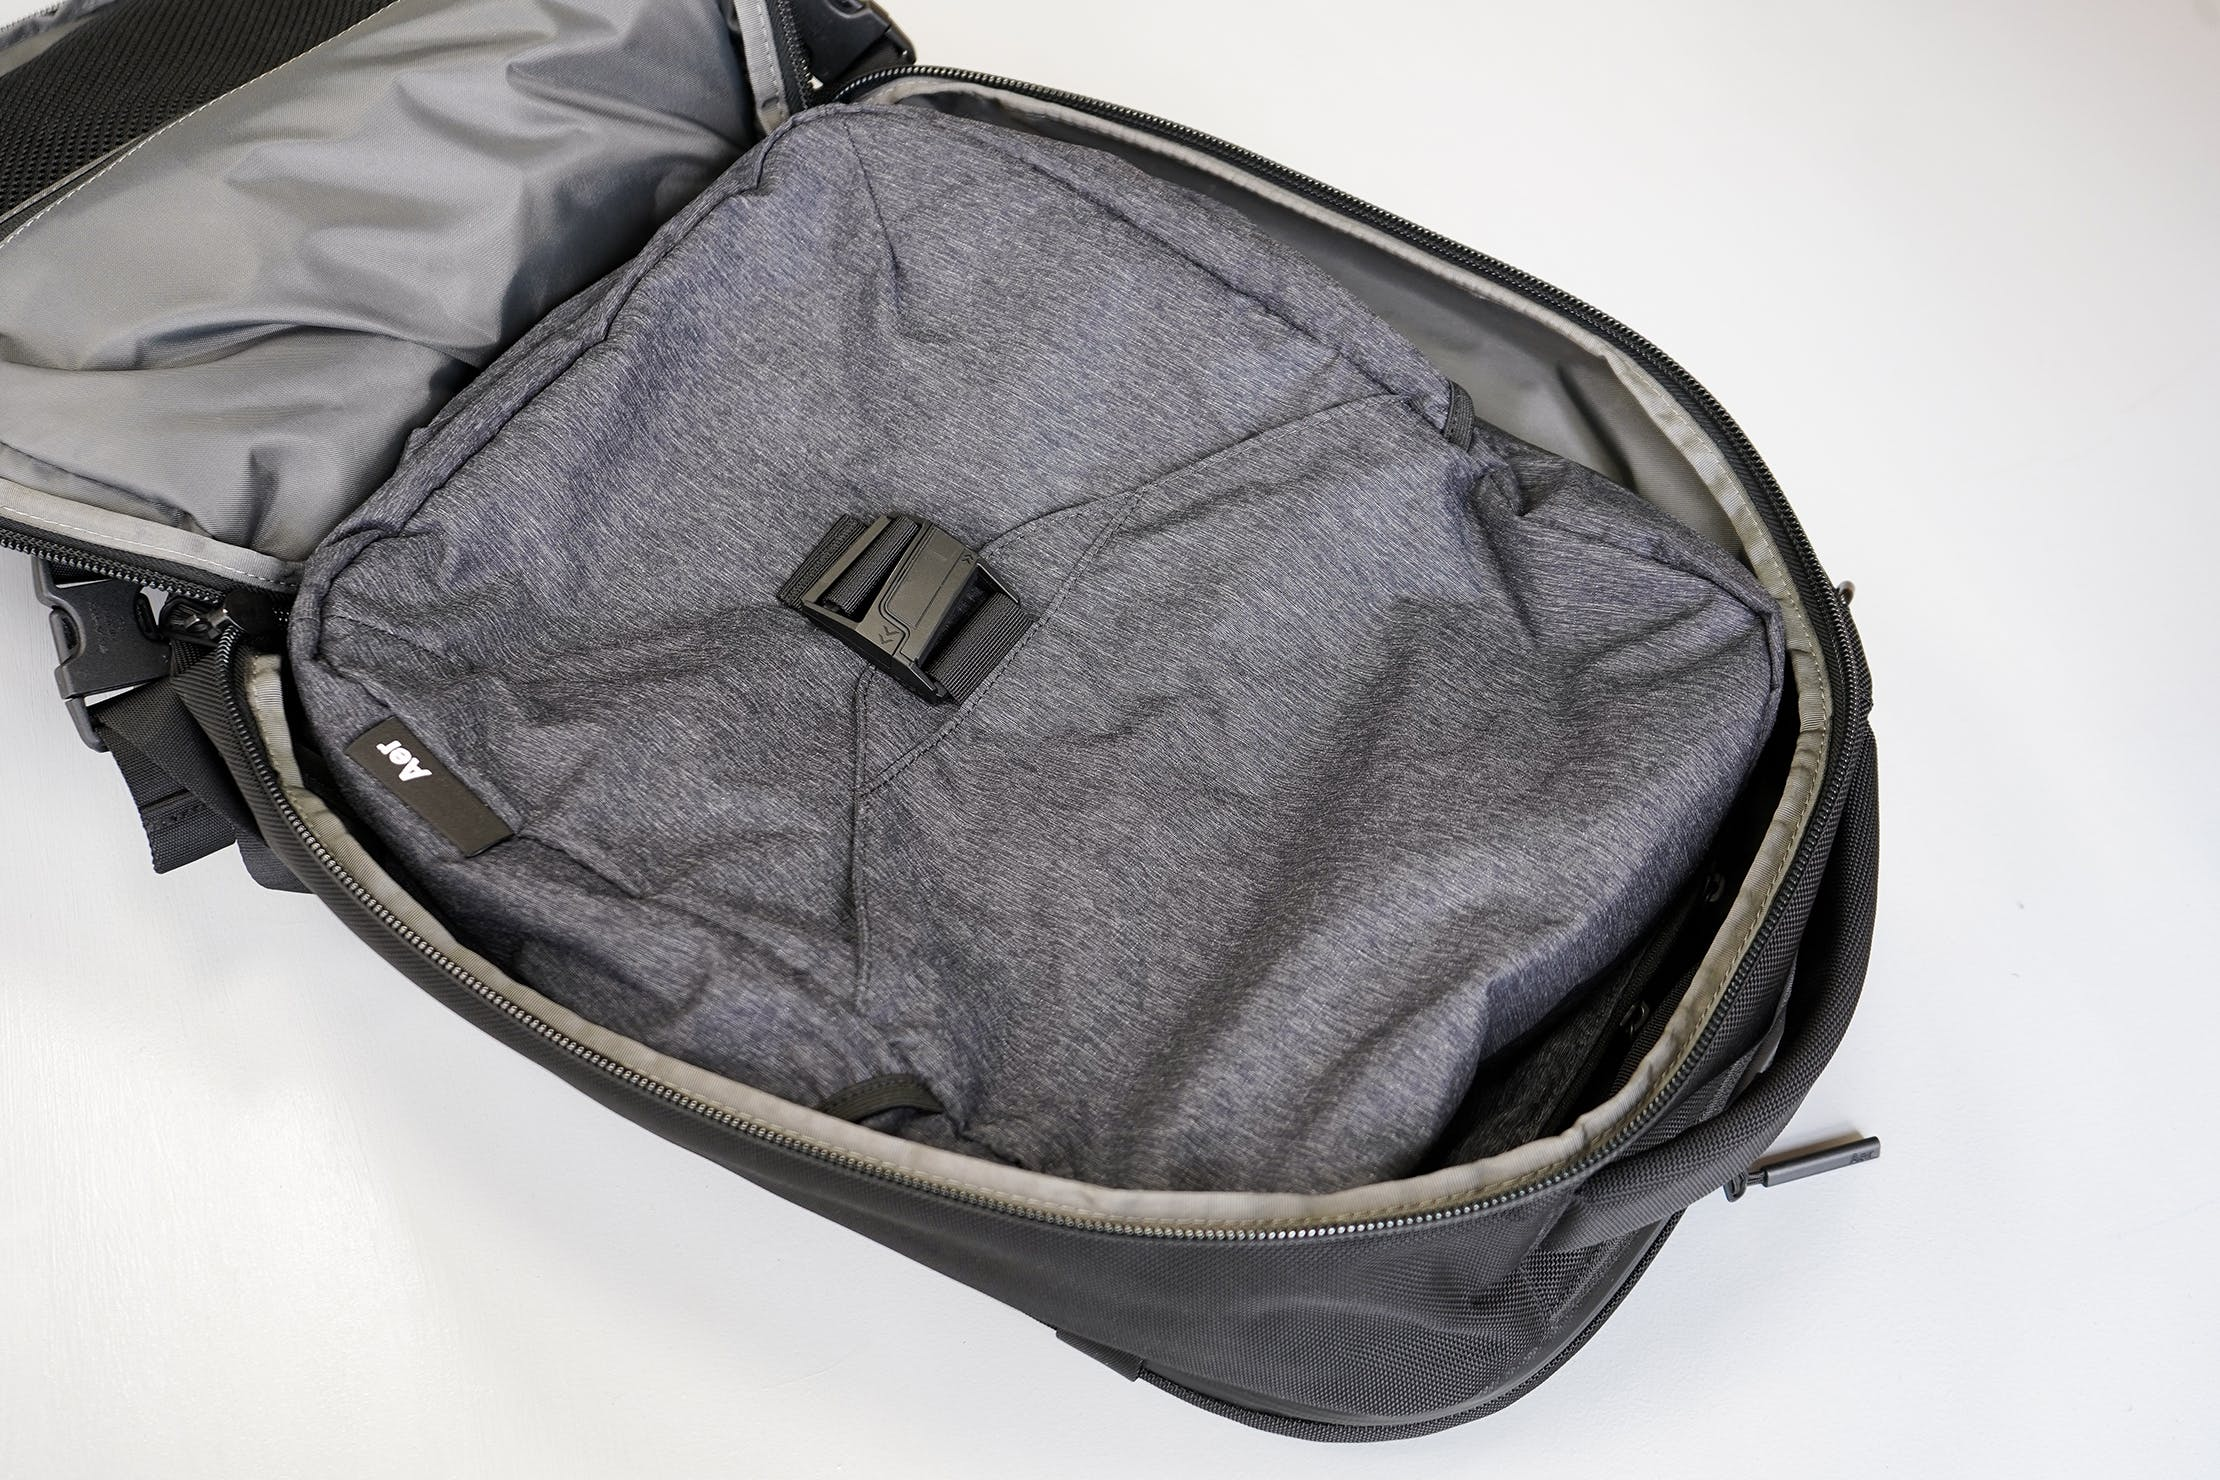 Aer Go Pack Laying Flat Inside The Aer Travel Pack 2